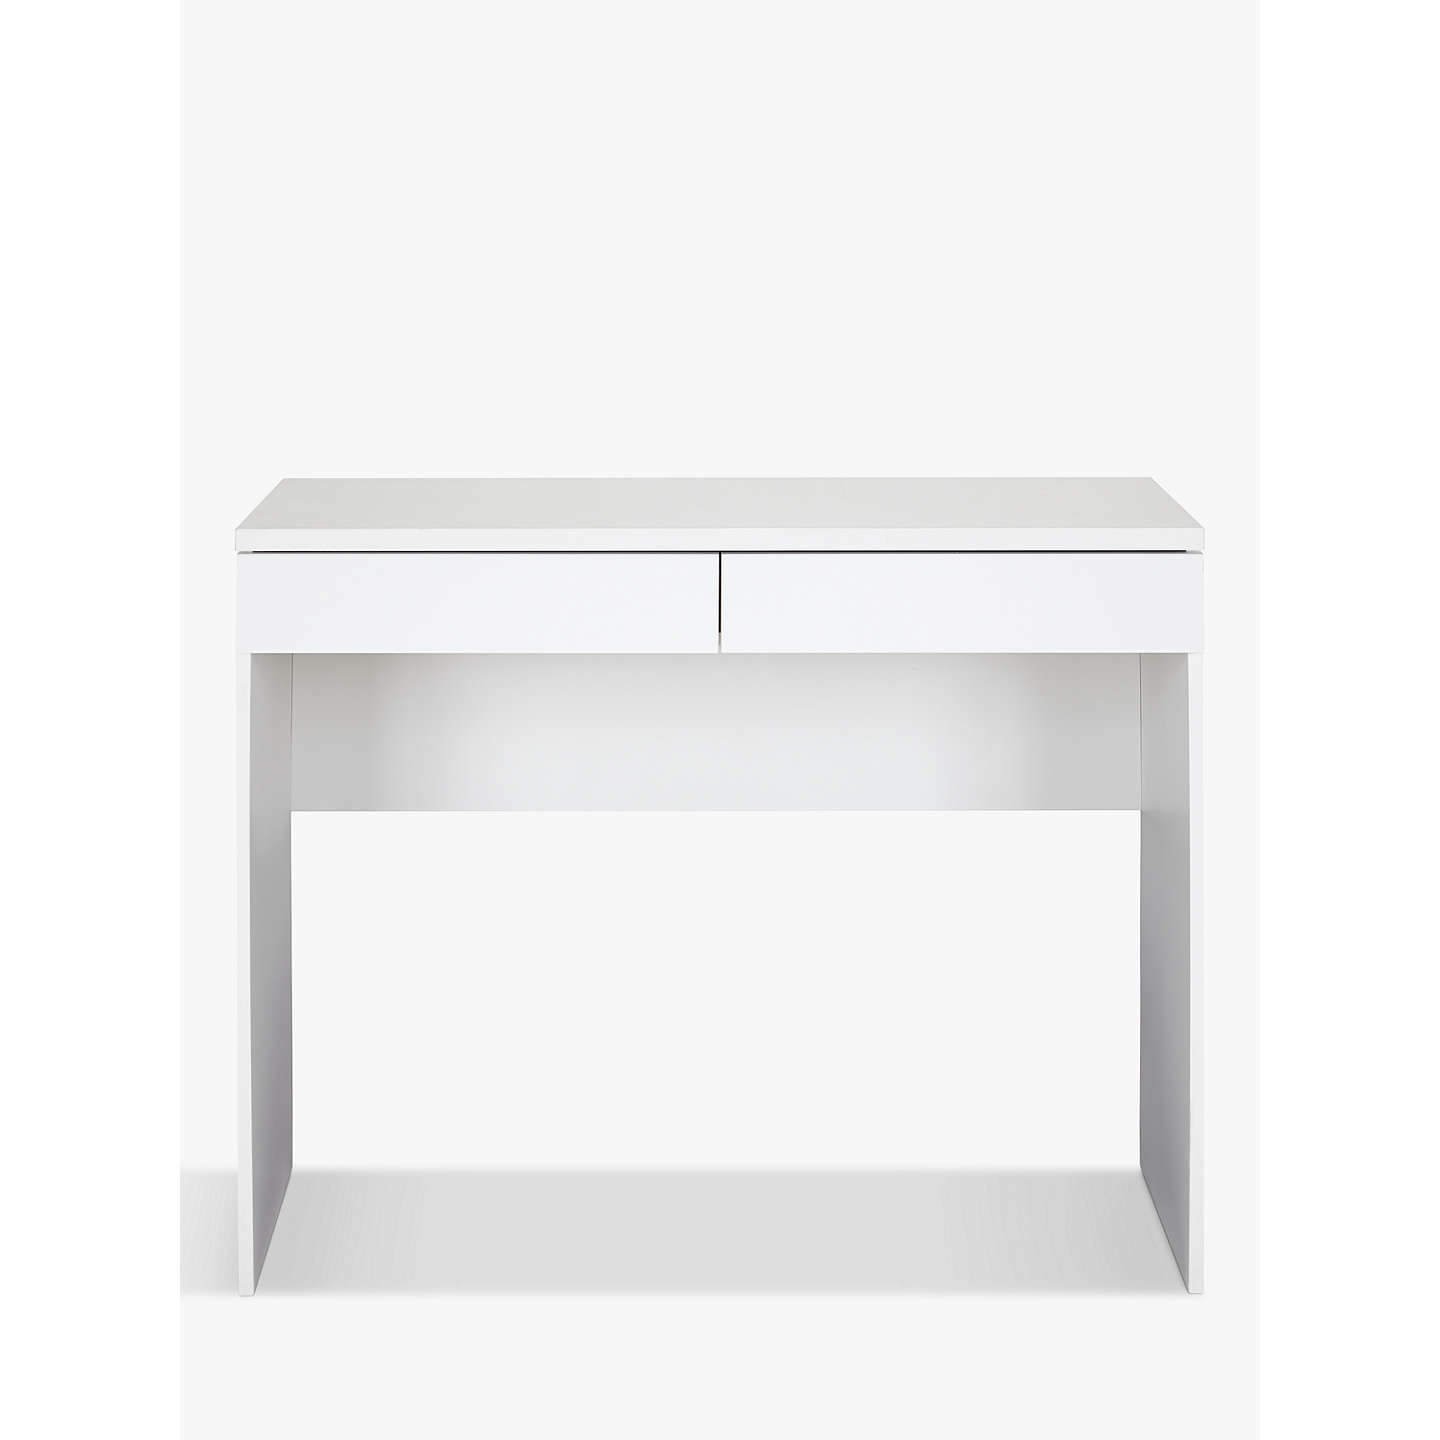 BuyHouse by John Lewis Mix it Dressing Table/Desk, Matt White Online at johnlewis.com